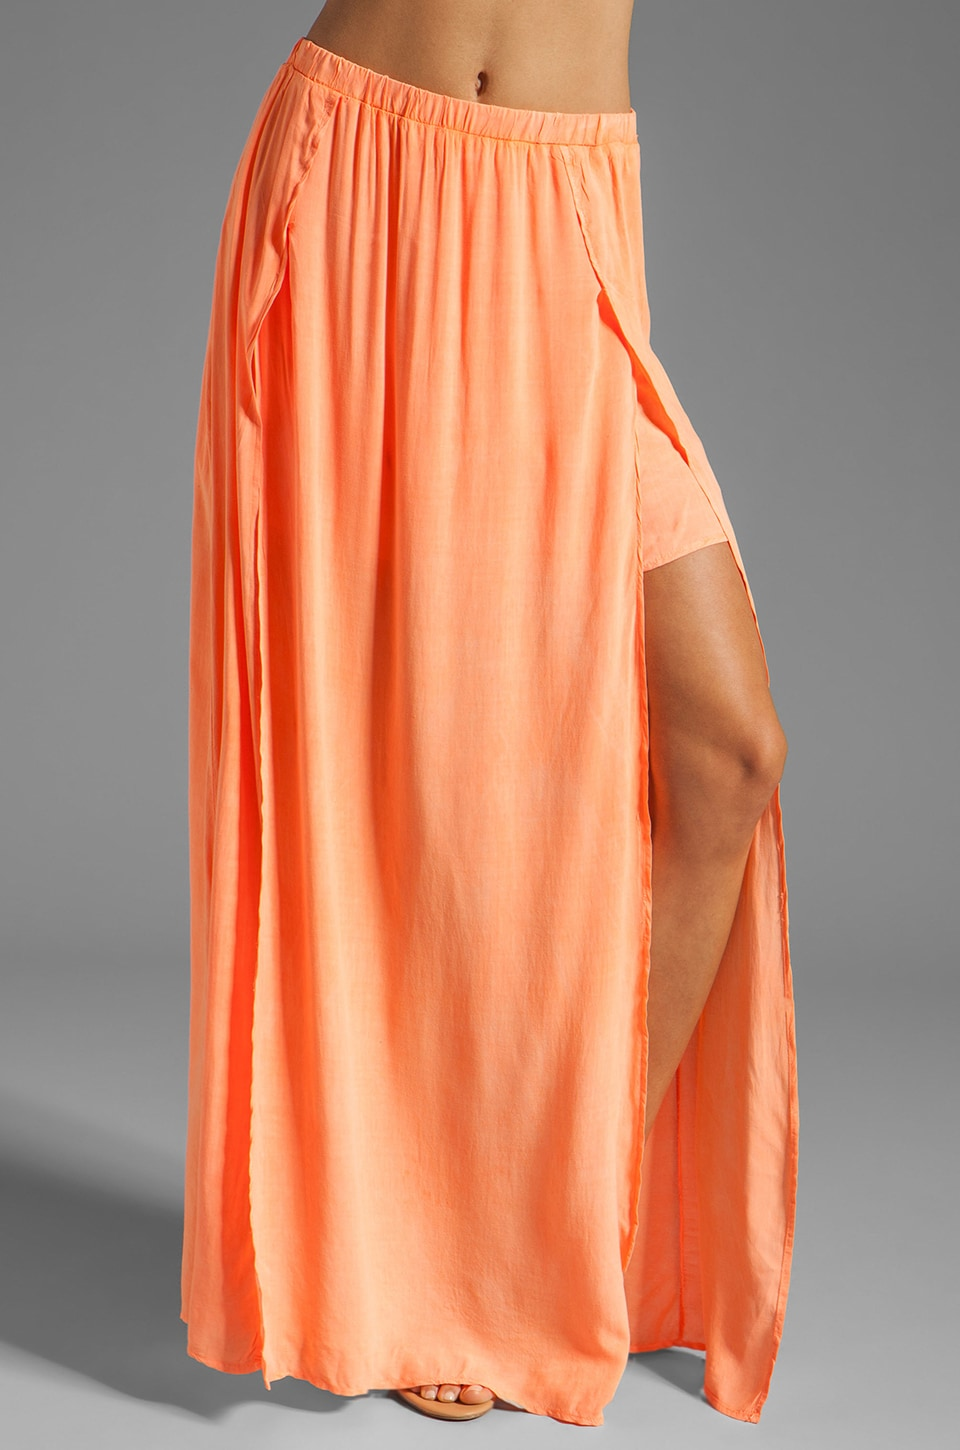 WOODLEIGH Nova Skirt in Orange Sorbet